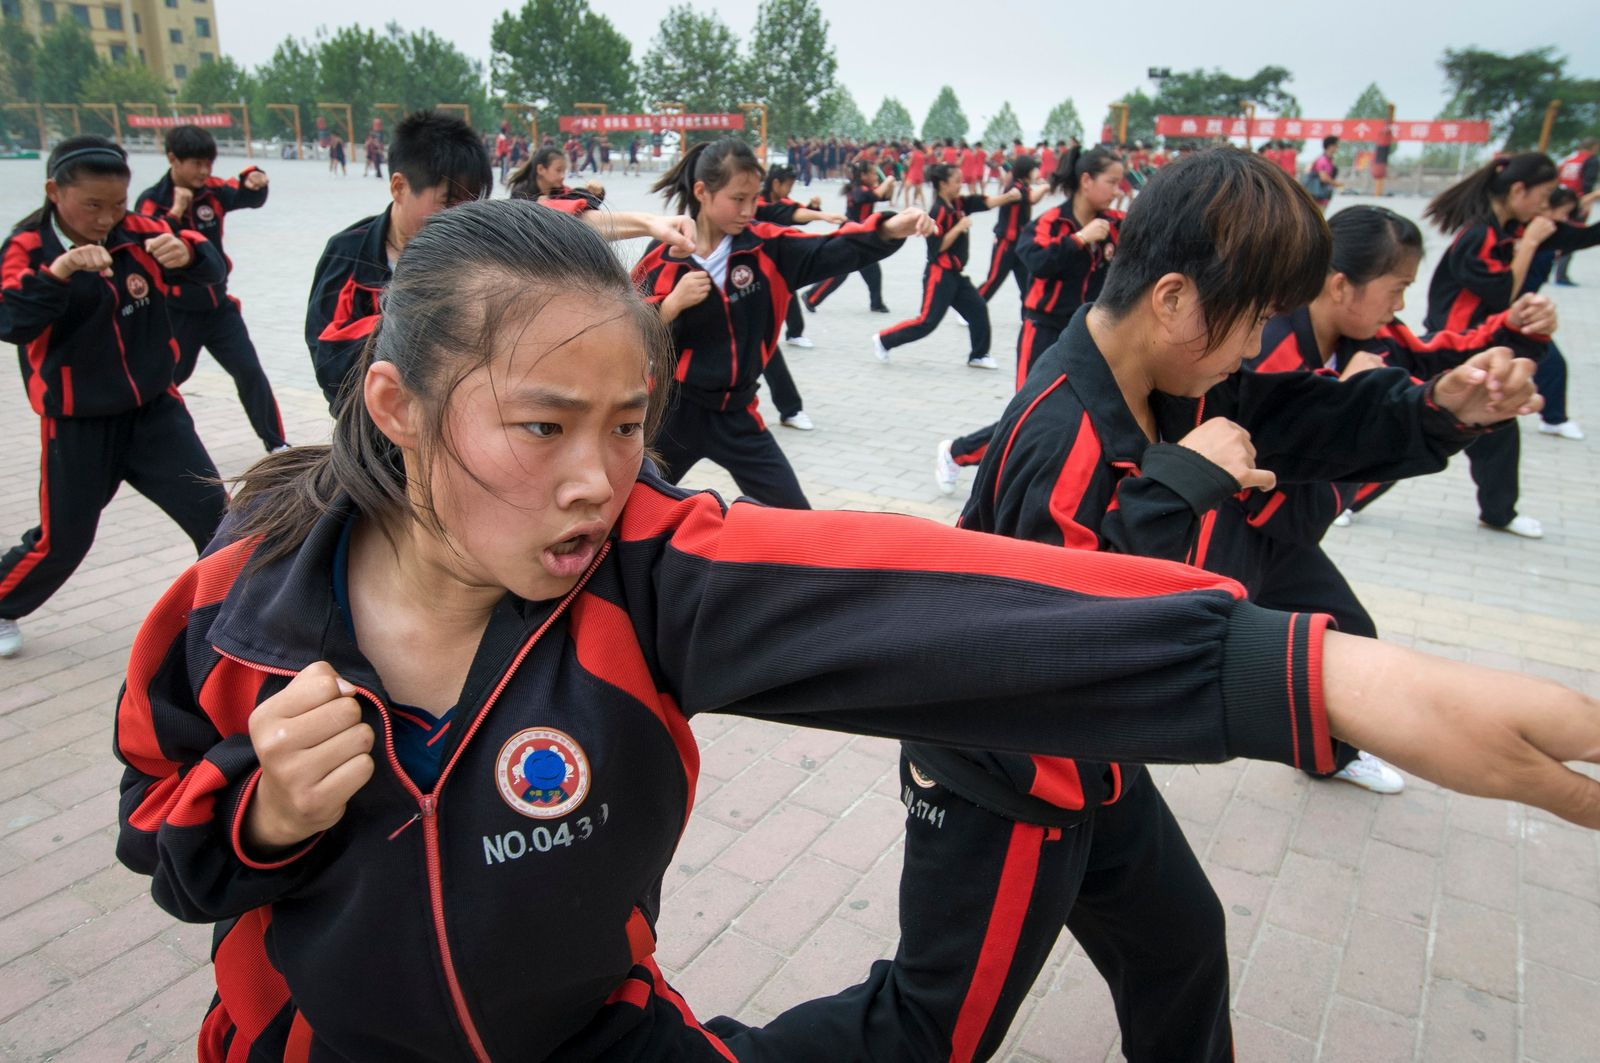 Students train in kung fu at the Songshan Shaolin Temple Wuseng Tuan Training Centre in Henan Province, China, ...